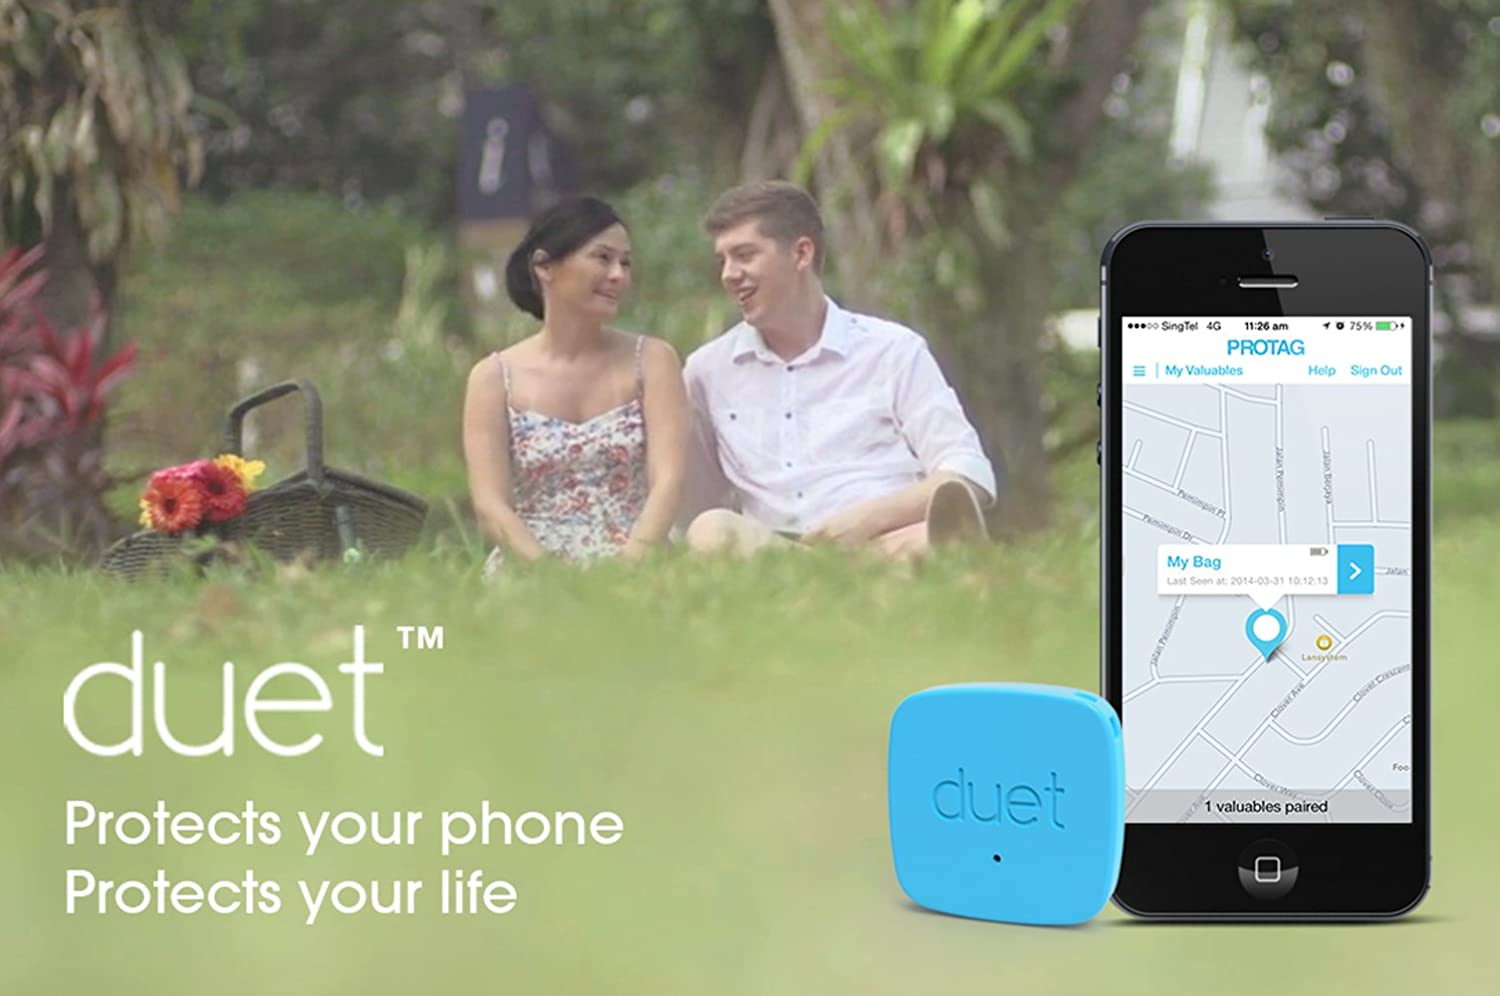 PROTAG Duet Bluetooth Tracker